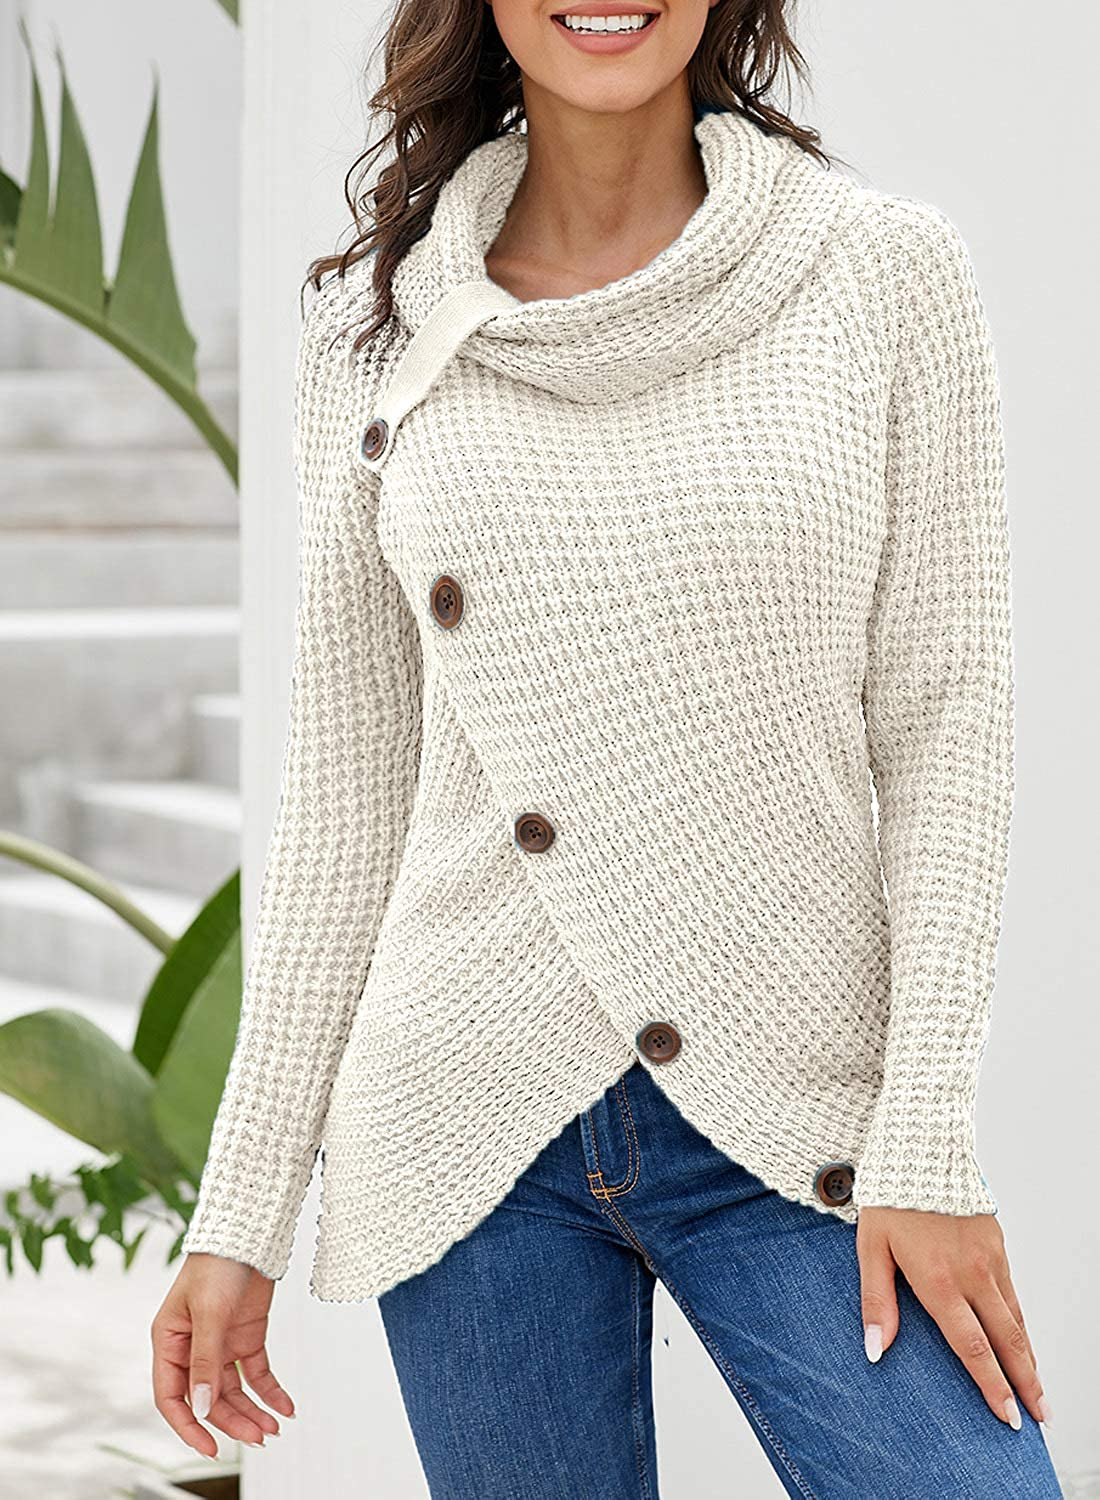 Asvivid Button Cowl Neck Sweaters for Women Long Sleeve Asymmetric Wrap Pullover Sweater Jumper Tops